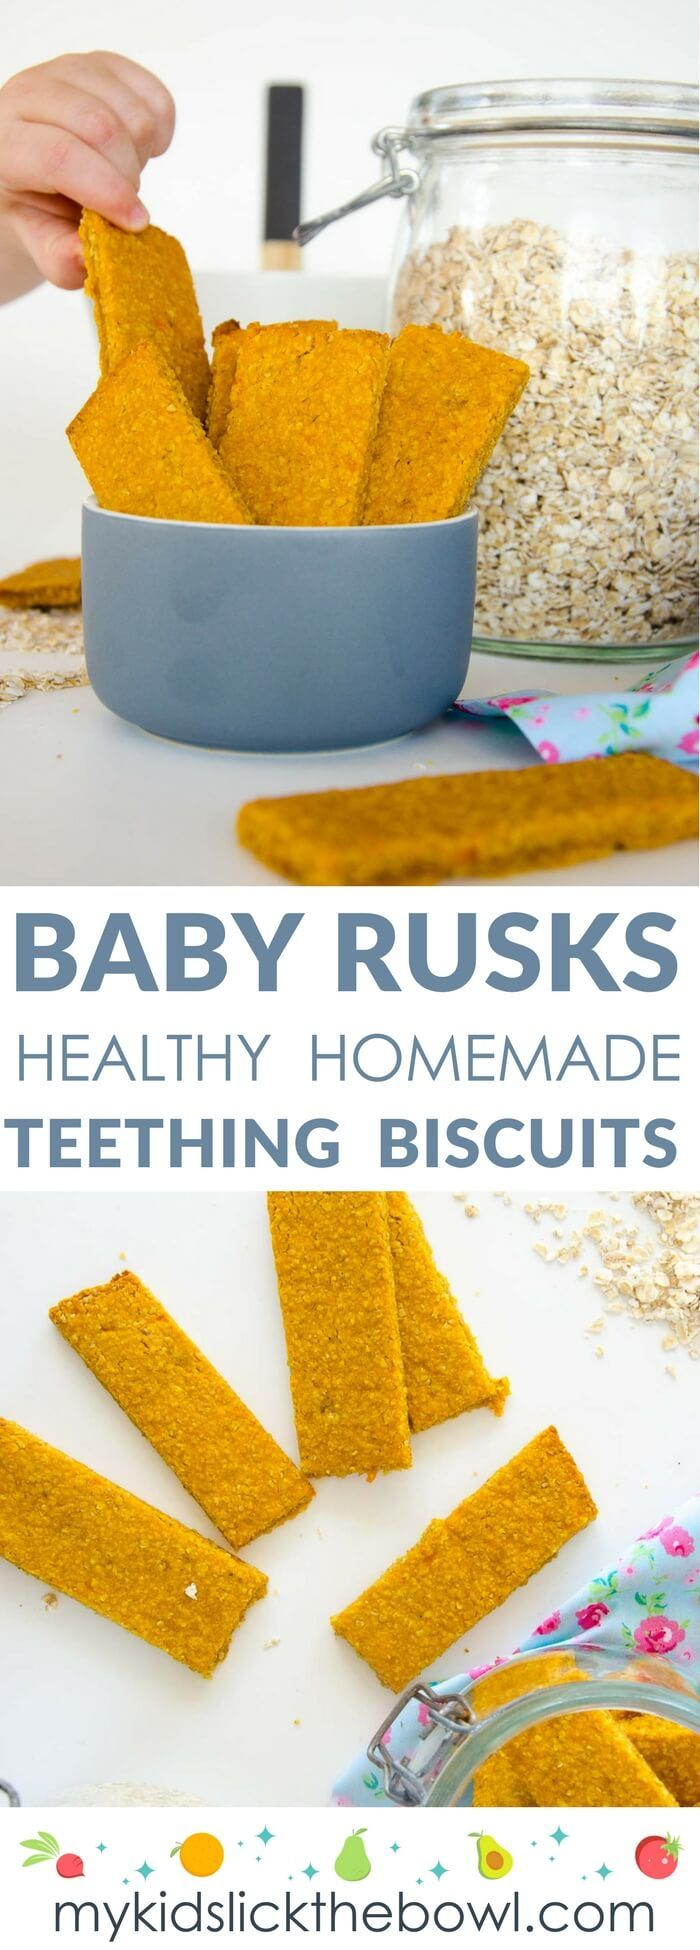 Healthy Baby Rusks Teething Biscuits Recipe Baby Food Recipes Homemade Baby Teething Biscuits